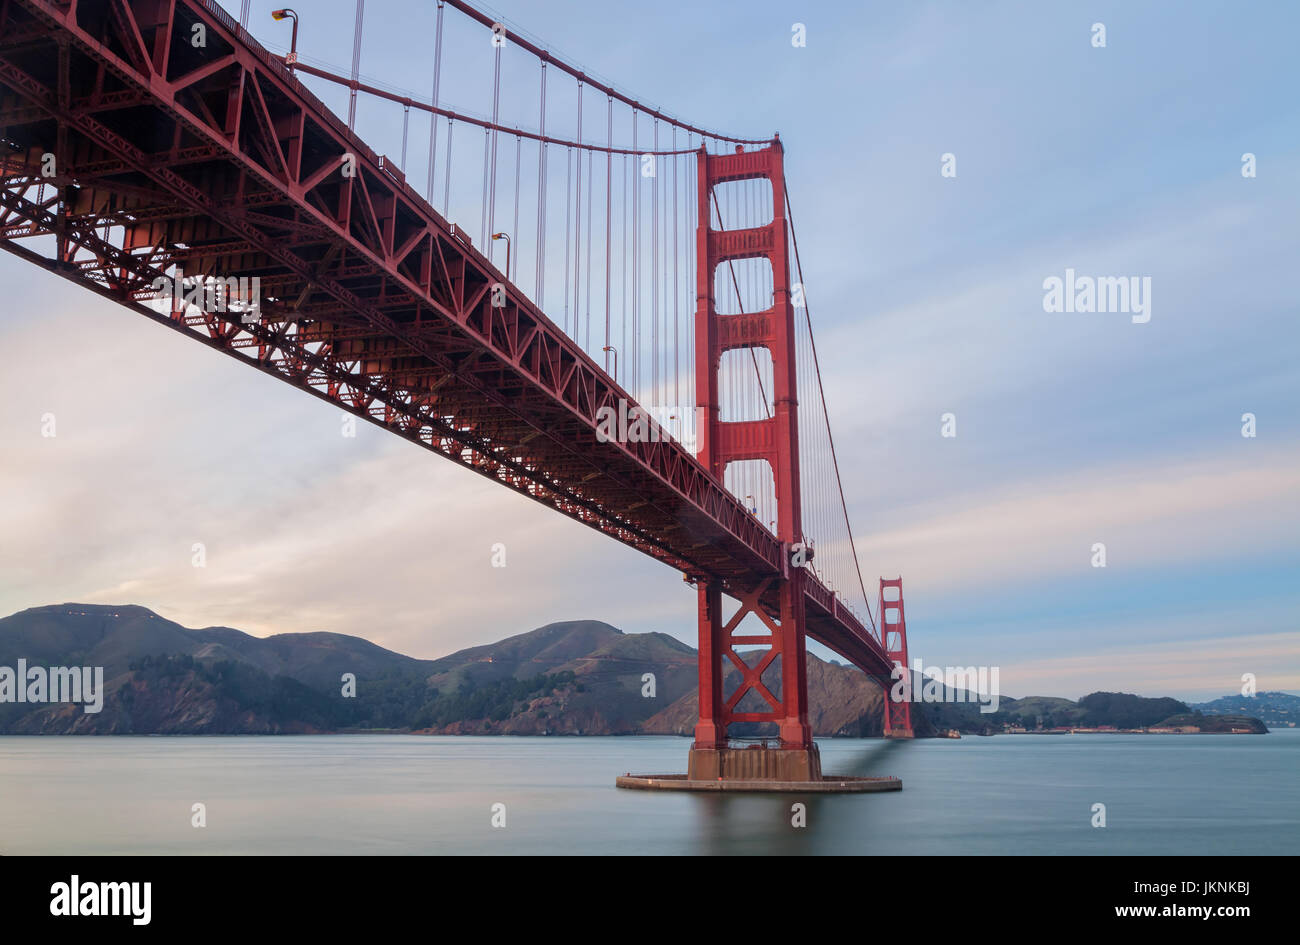 the iconic Golden Gate Bridge in San Francisco,  USA, at sunset - Stock Image